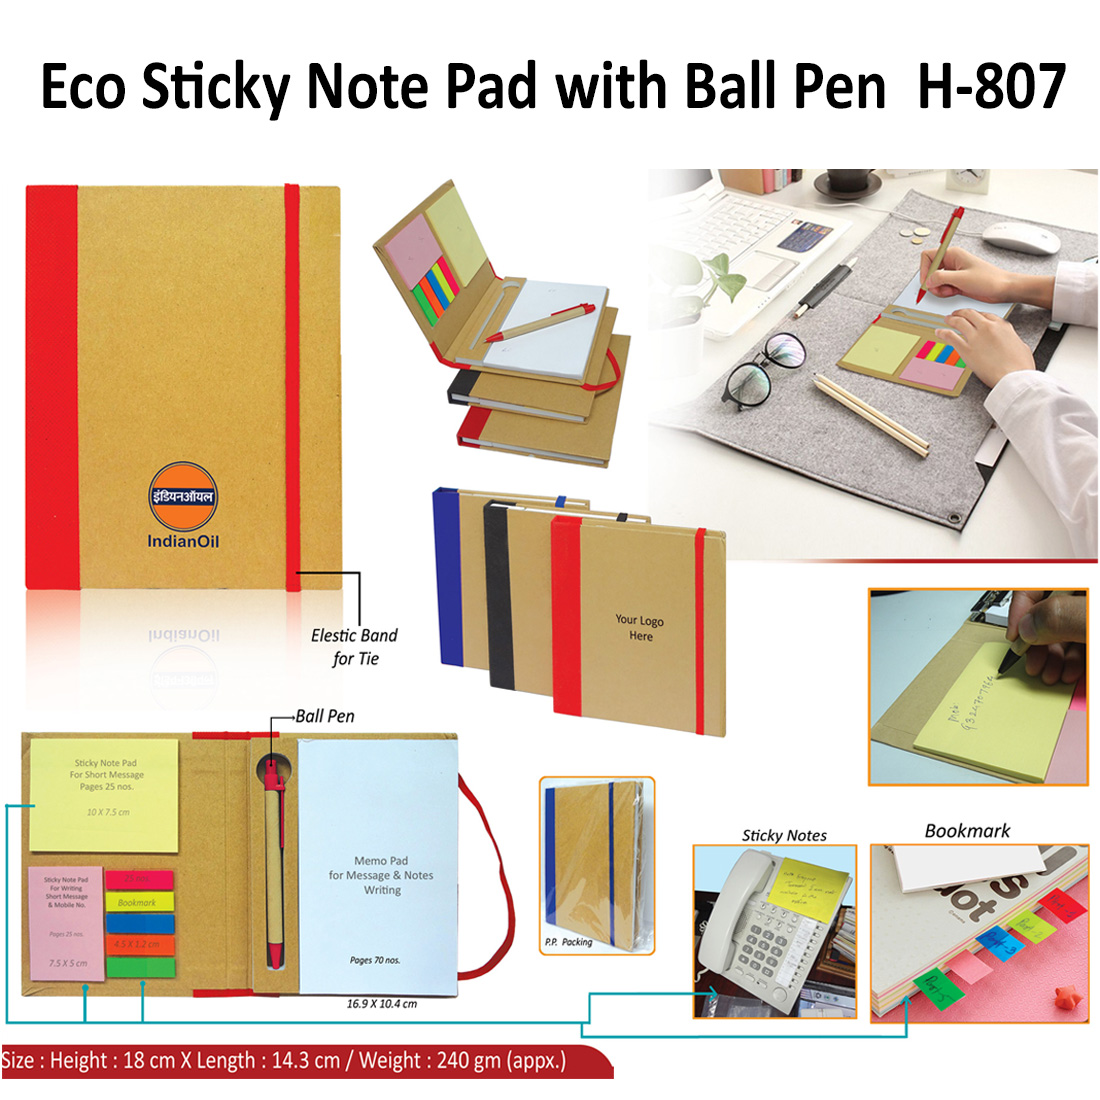 Eco Sticky Note Pad with Ball Pen H-807